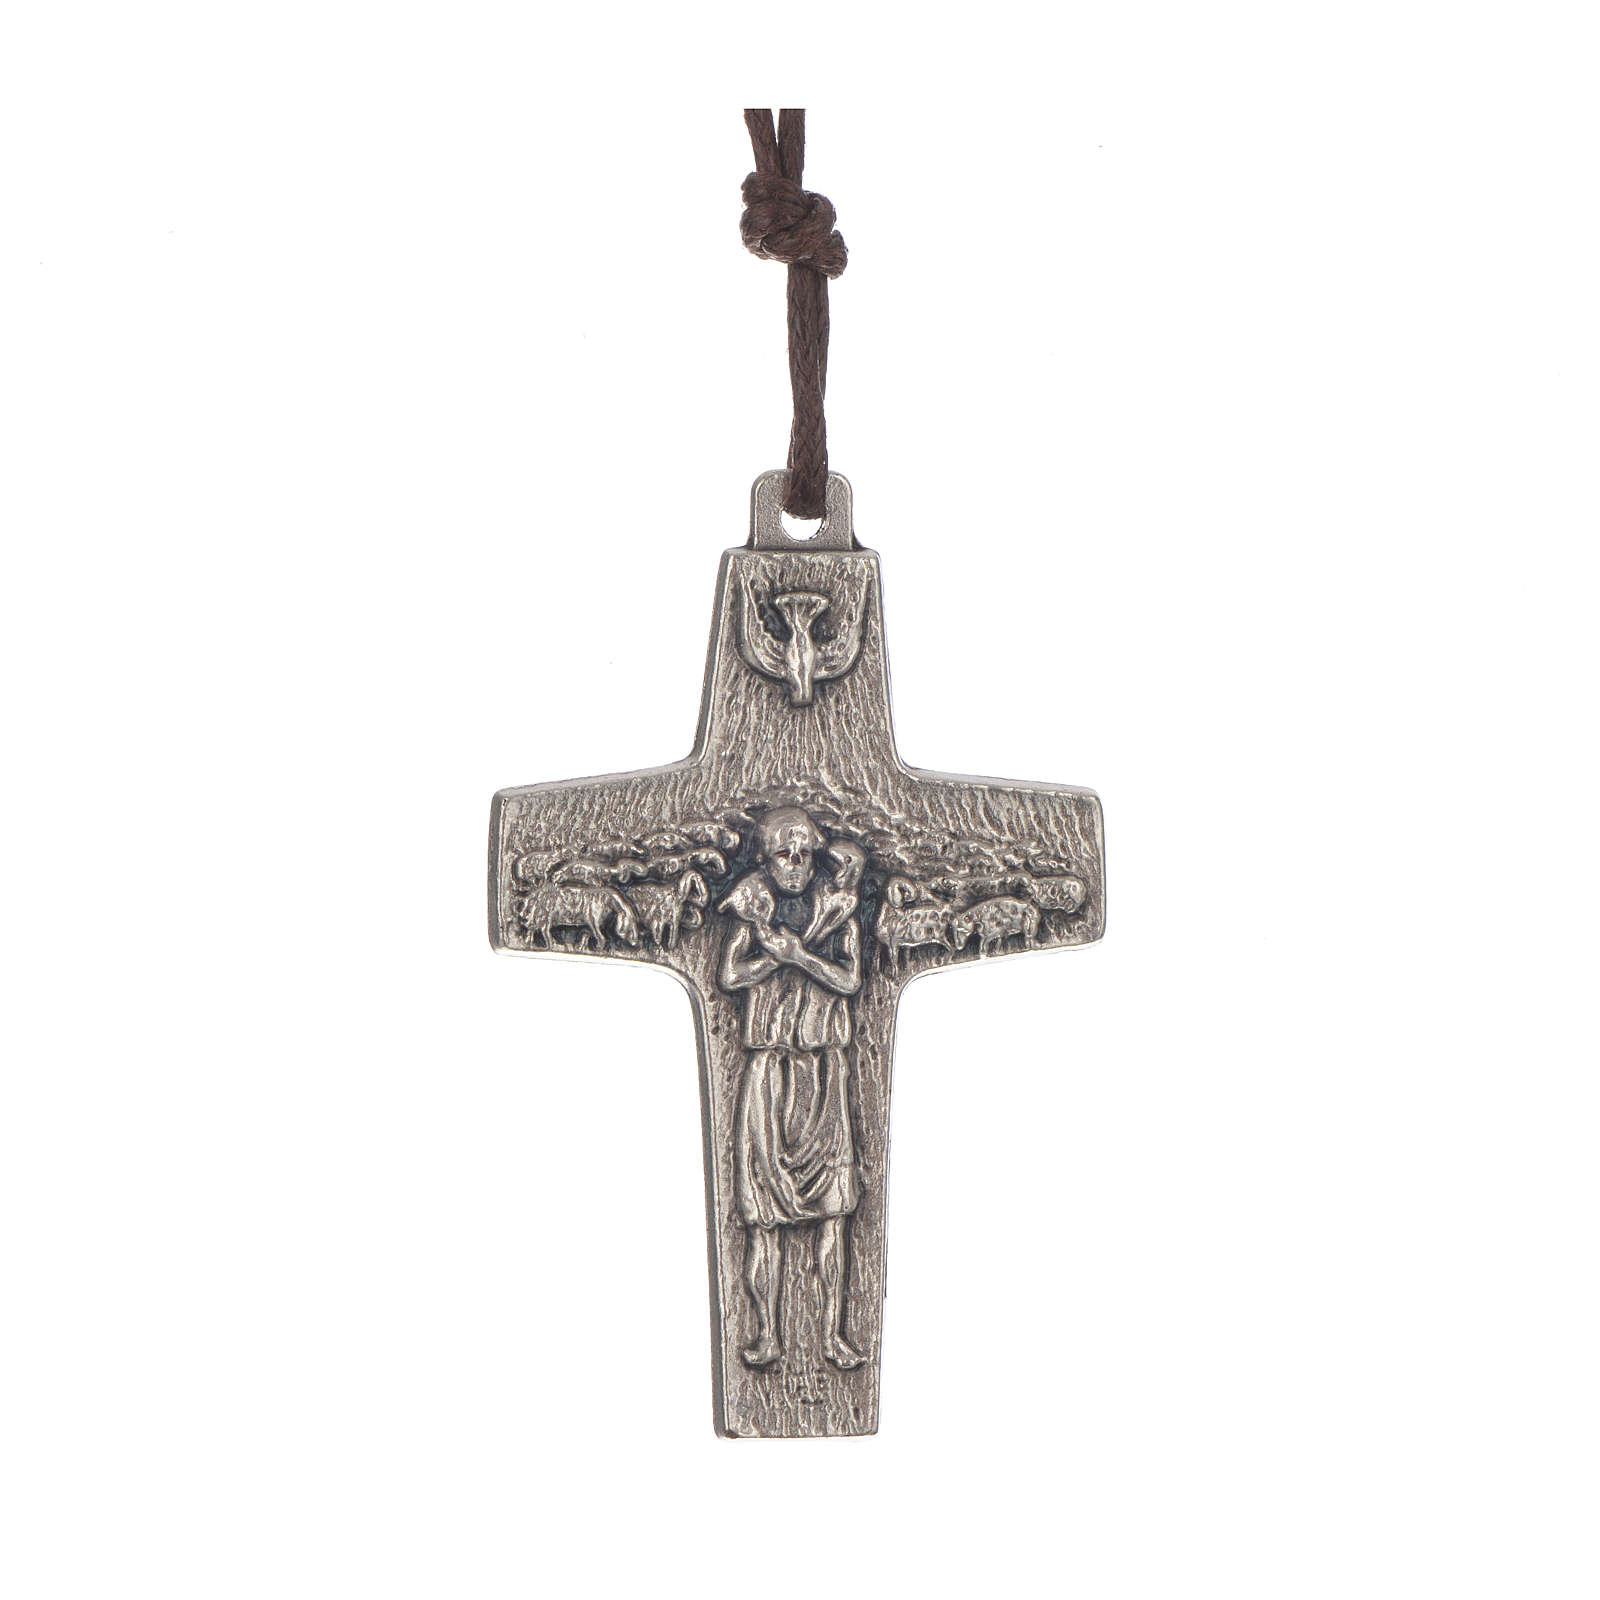 Collar Cruz del Papa Francisco metal 4x2,6cm con cuerda 4